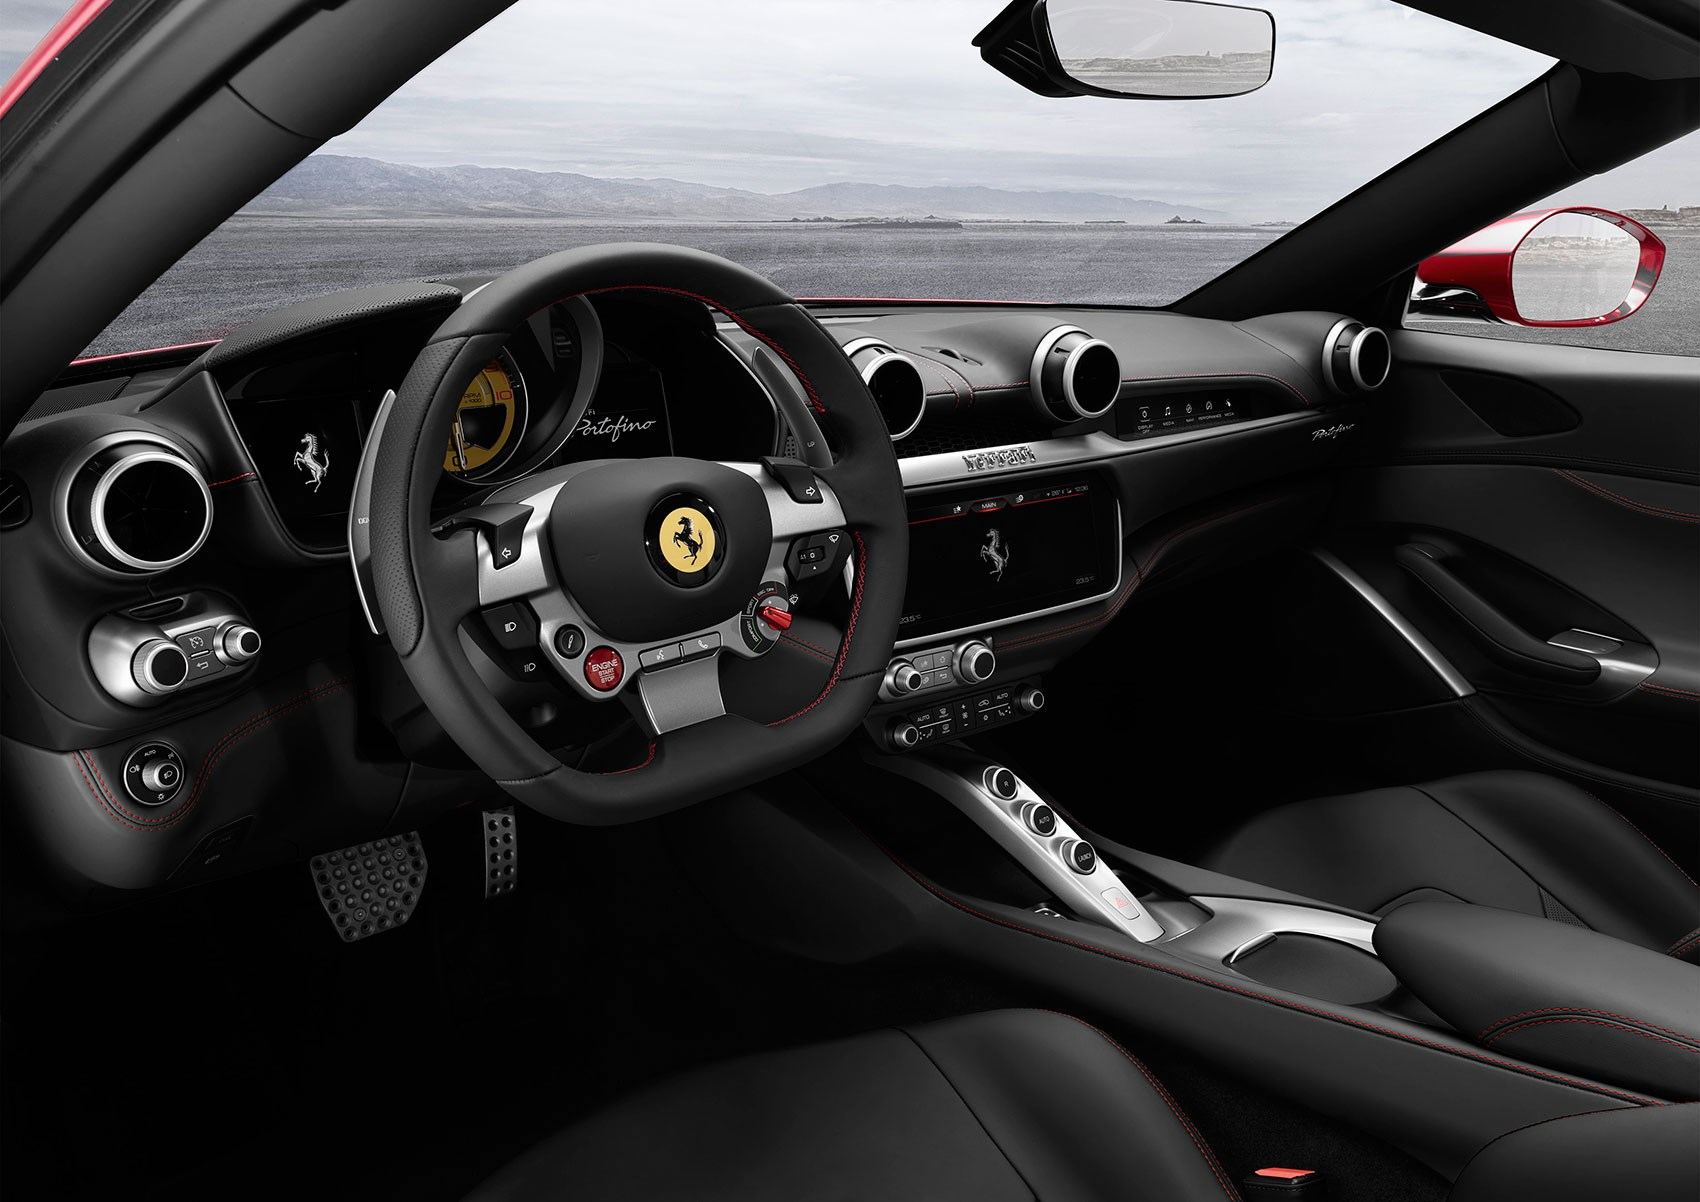 ... A 2+2 Cockpit In The Ferrari Portofino, Née California T